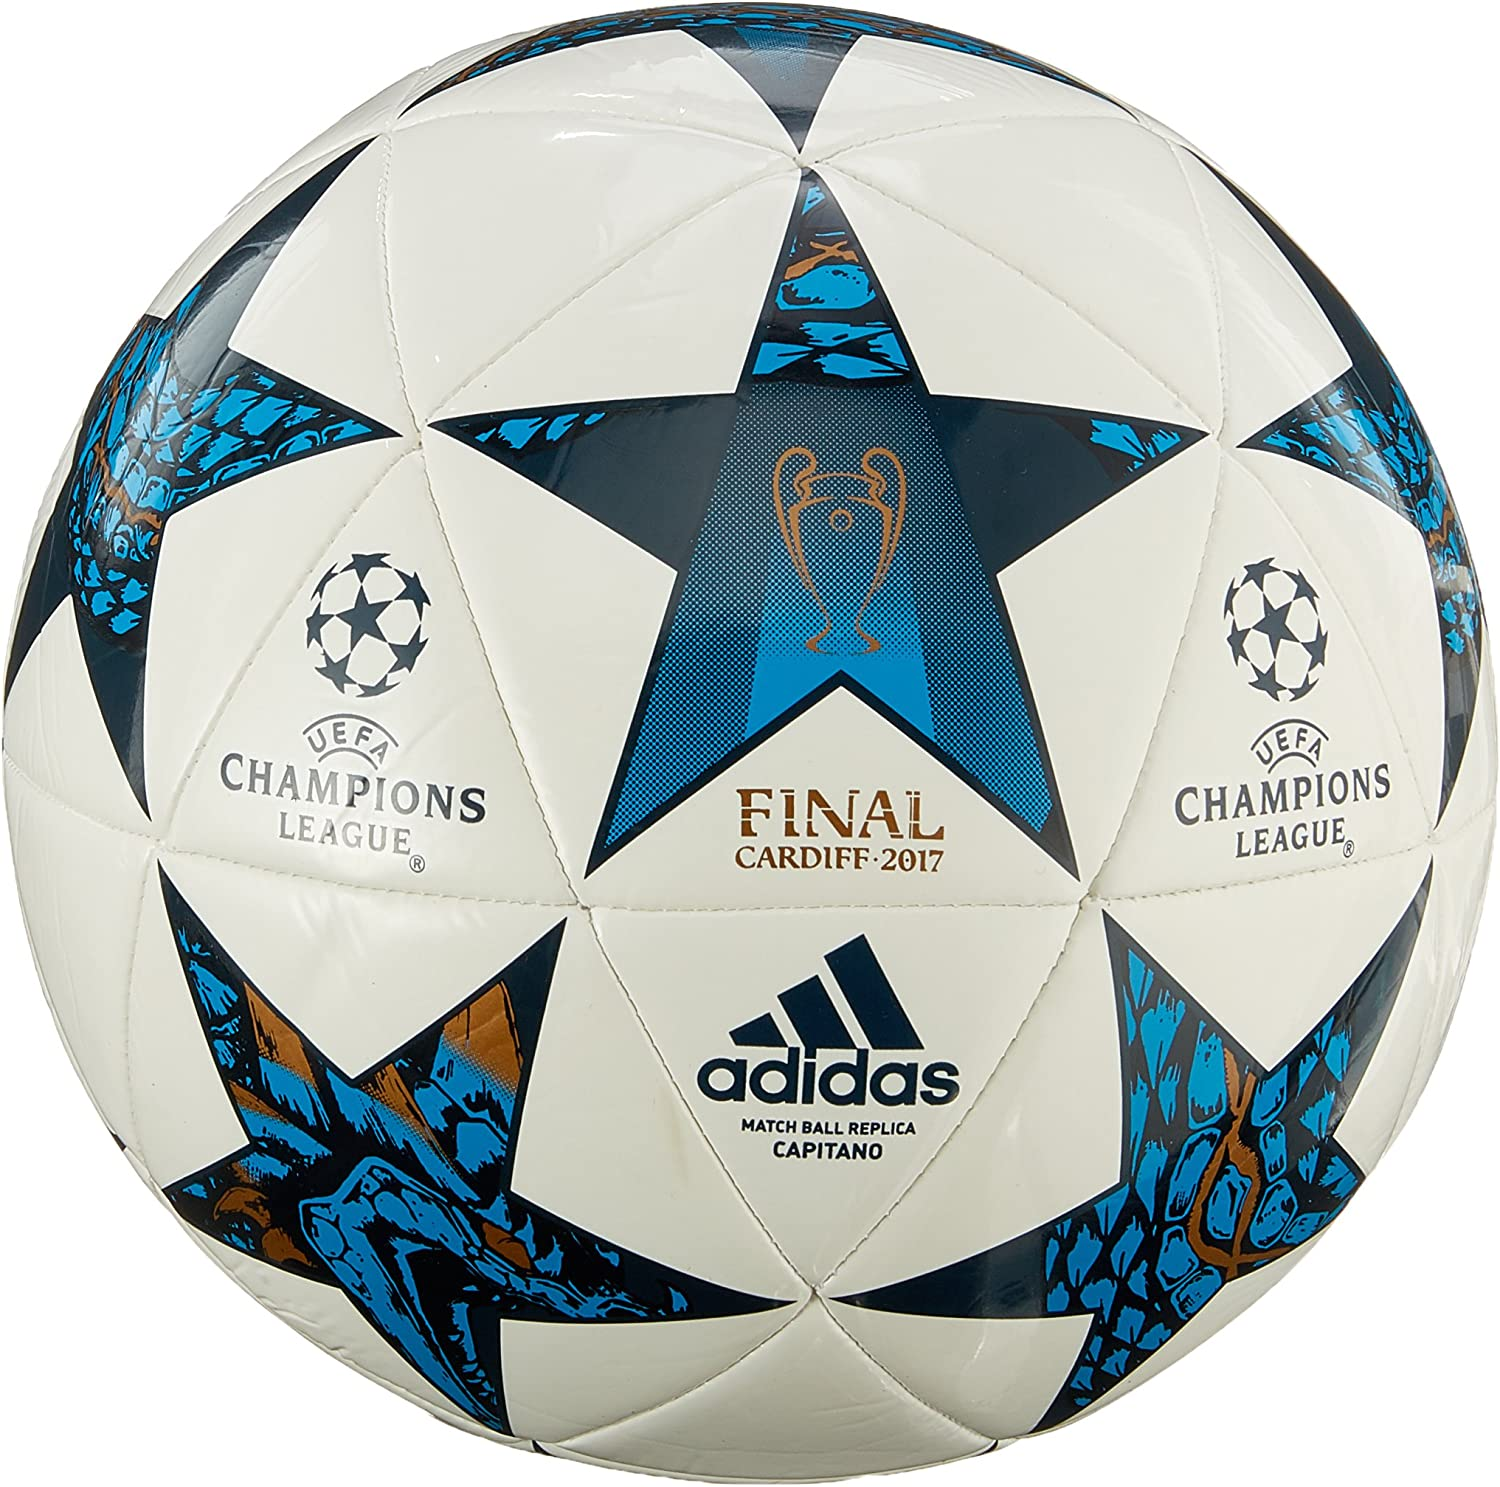 Mal funcionamiento borroso máximo  Adidas Men Finale Cardiff 2017 Capitano Ball - White/Mystery Blue/Cyan,  Size 5: Amazon.co.uk: Sports & Outdoors